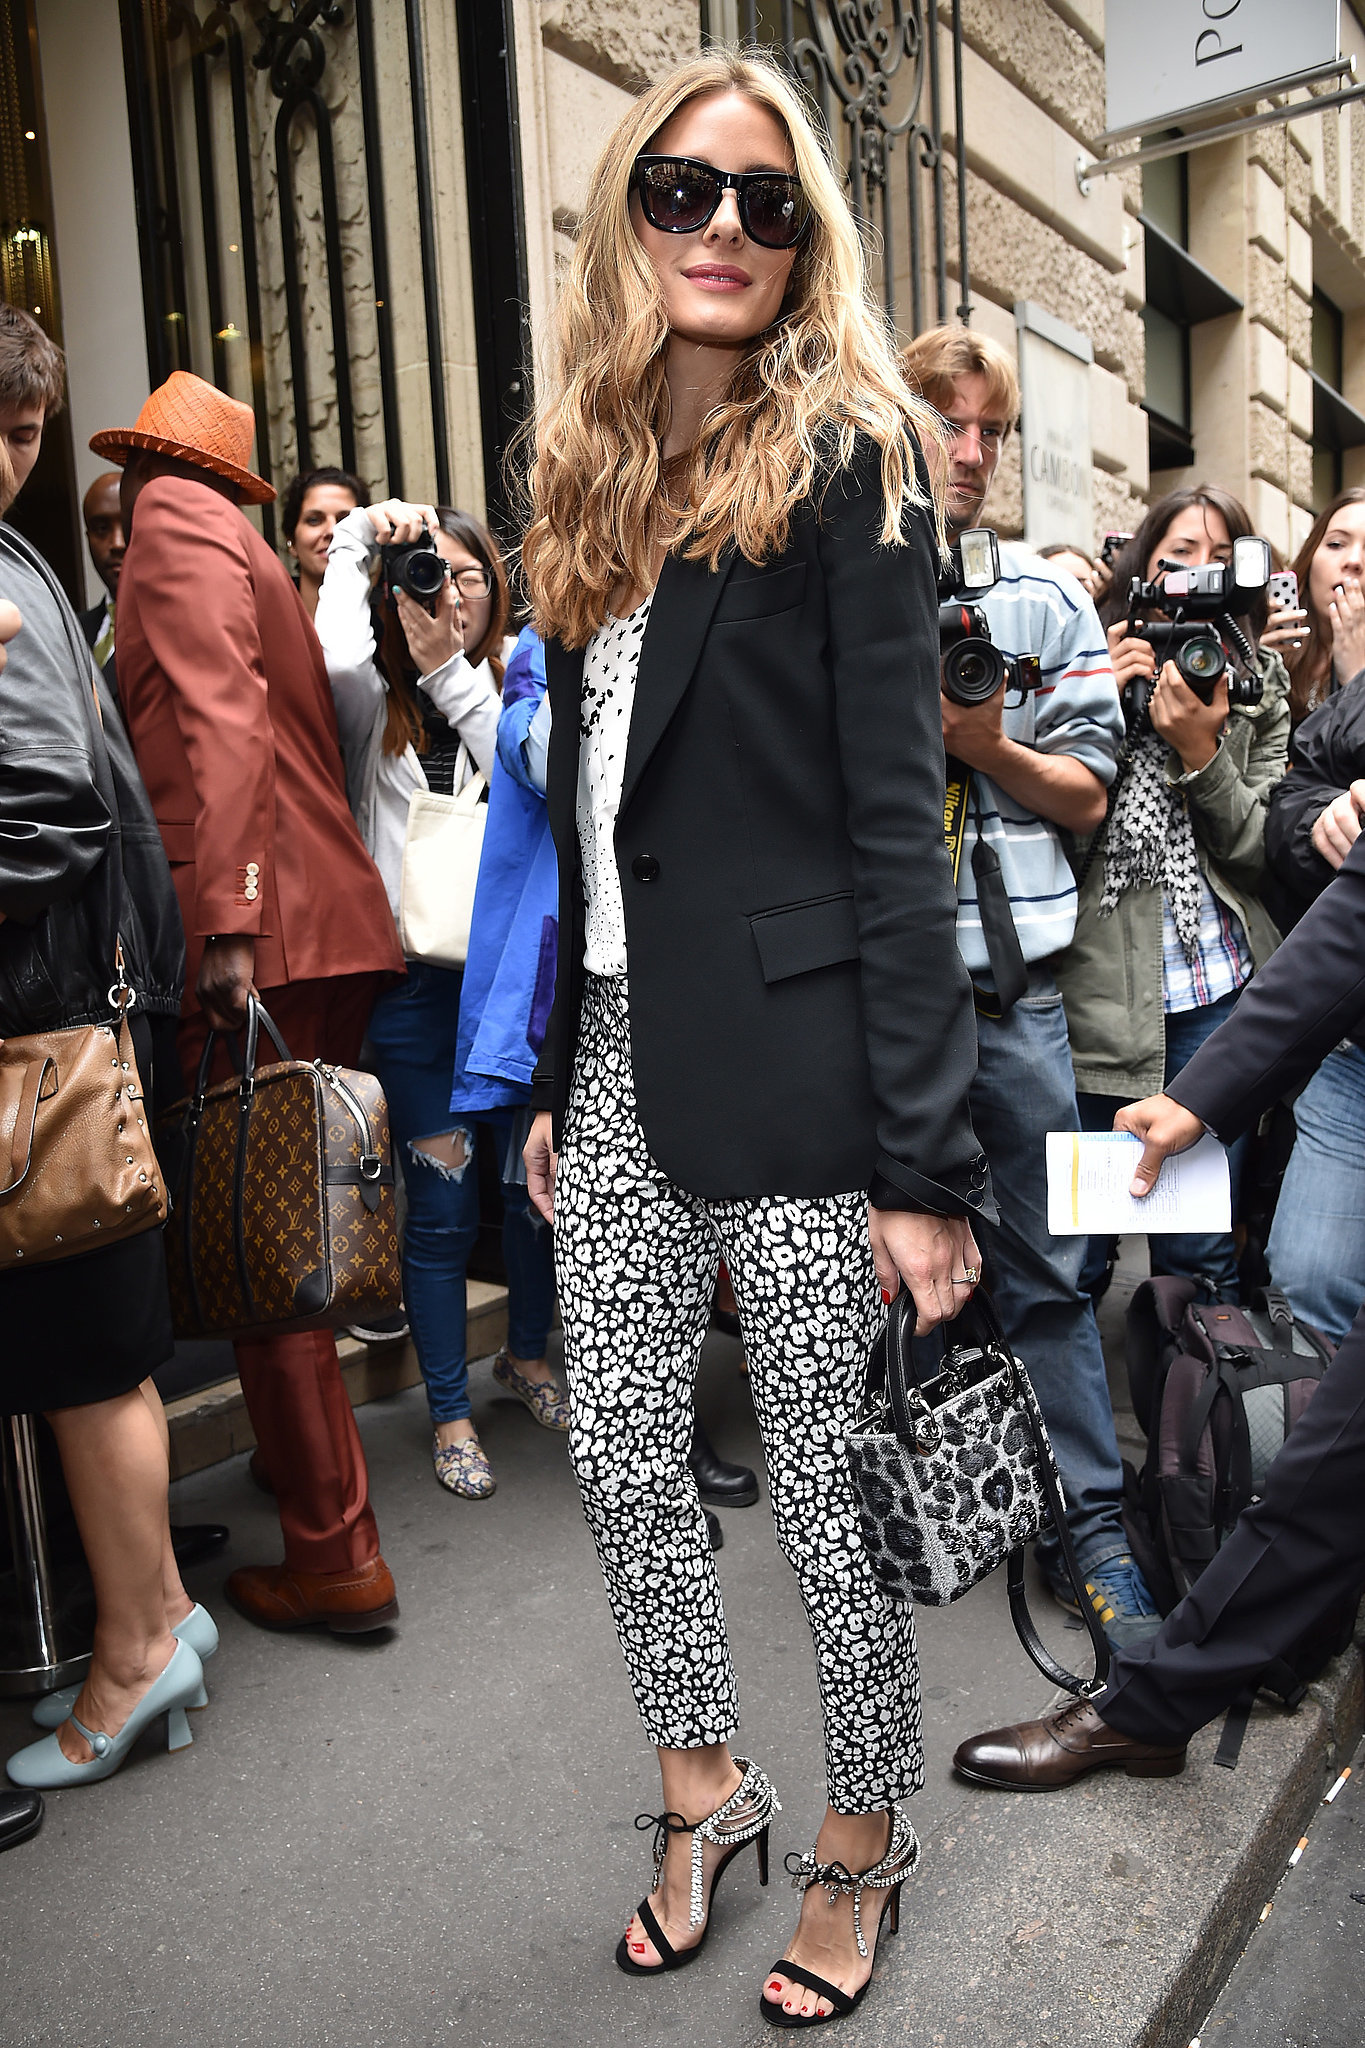 . . . And then wear Banana Republic pants to Haute Couture Fashion Week too.